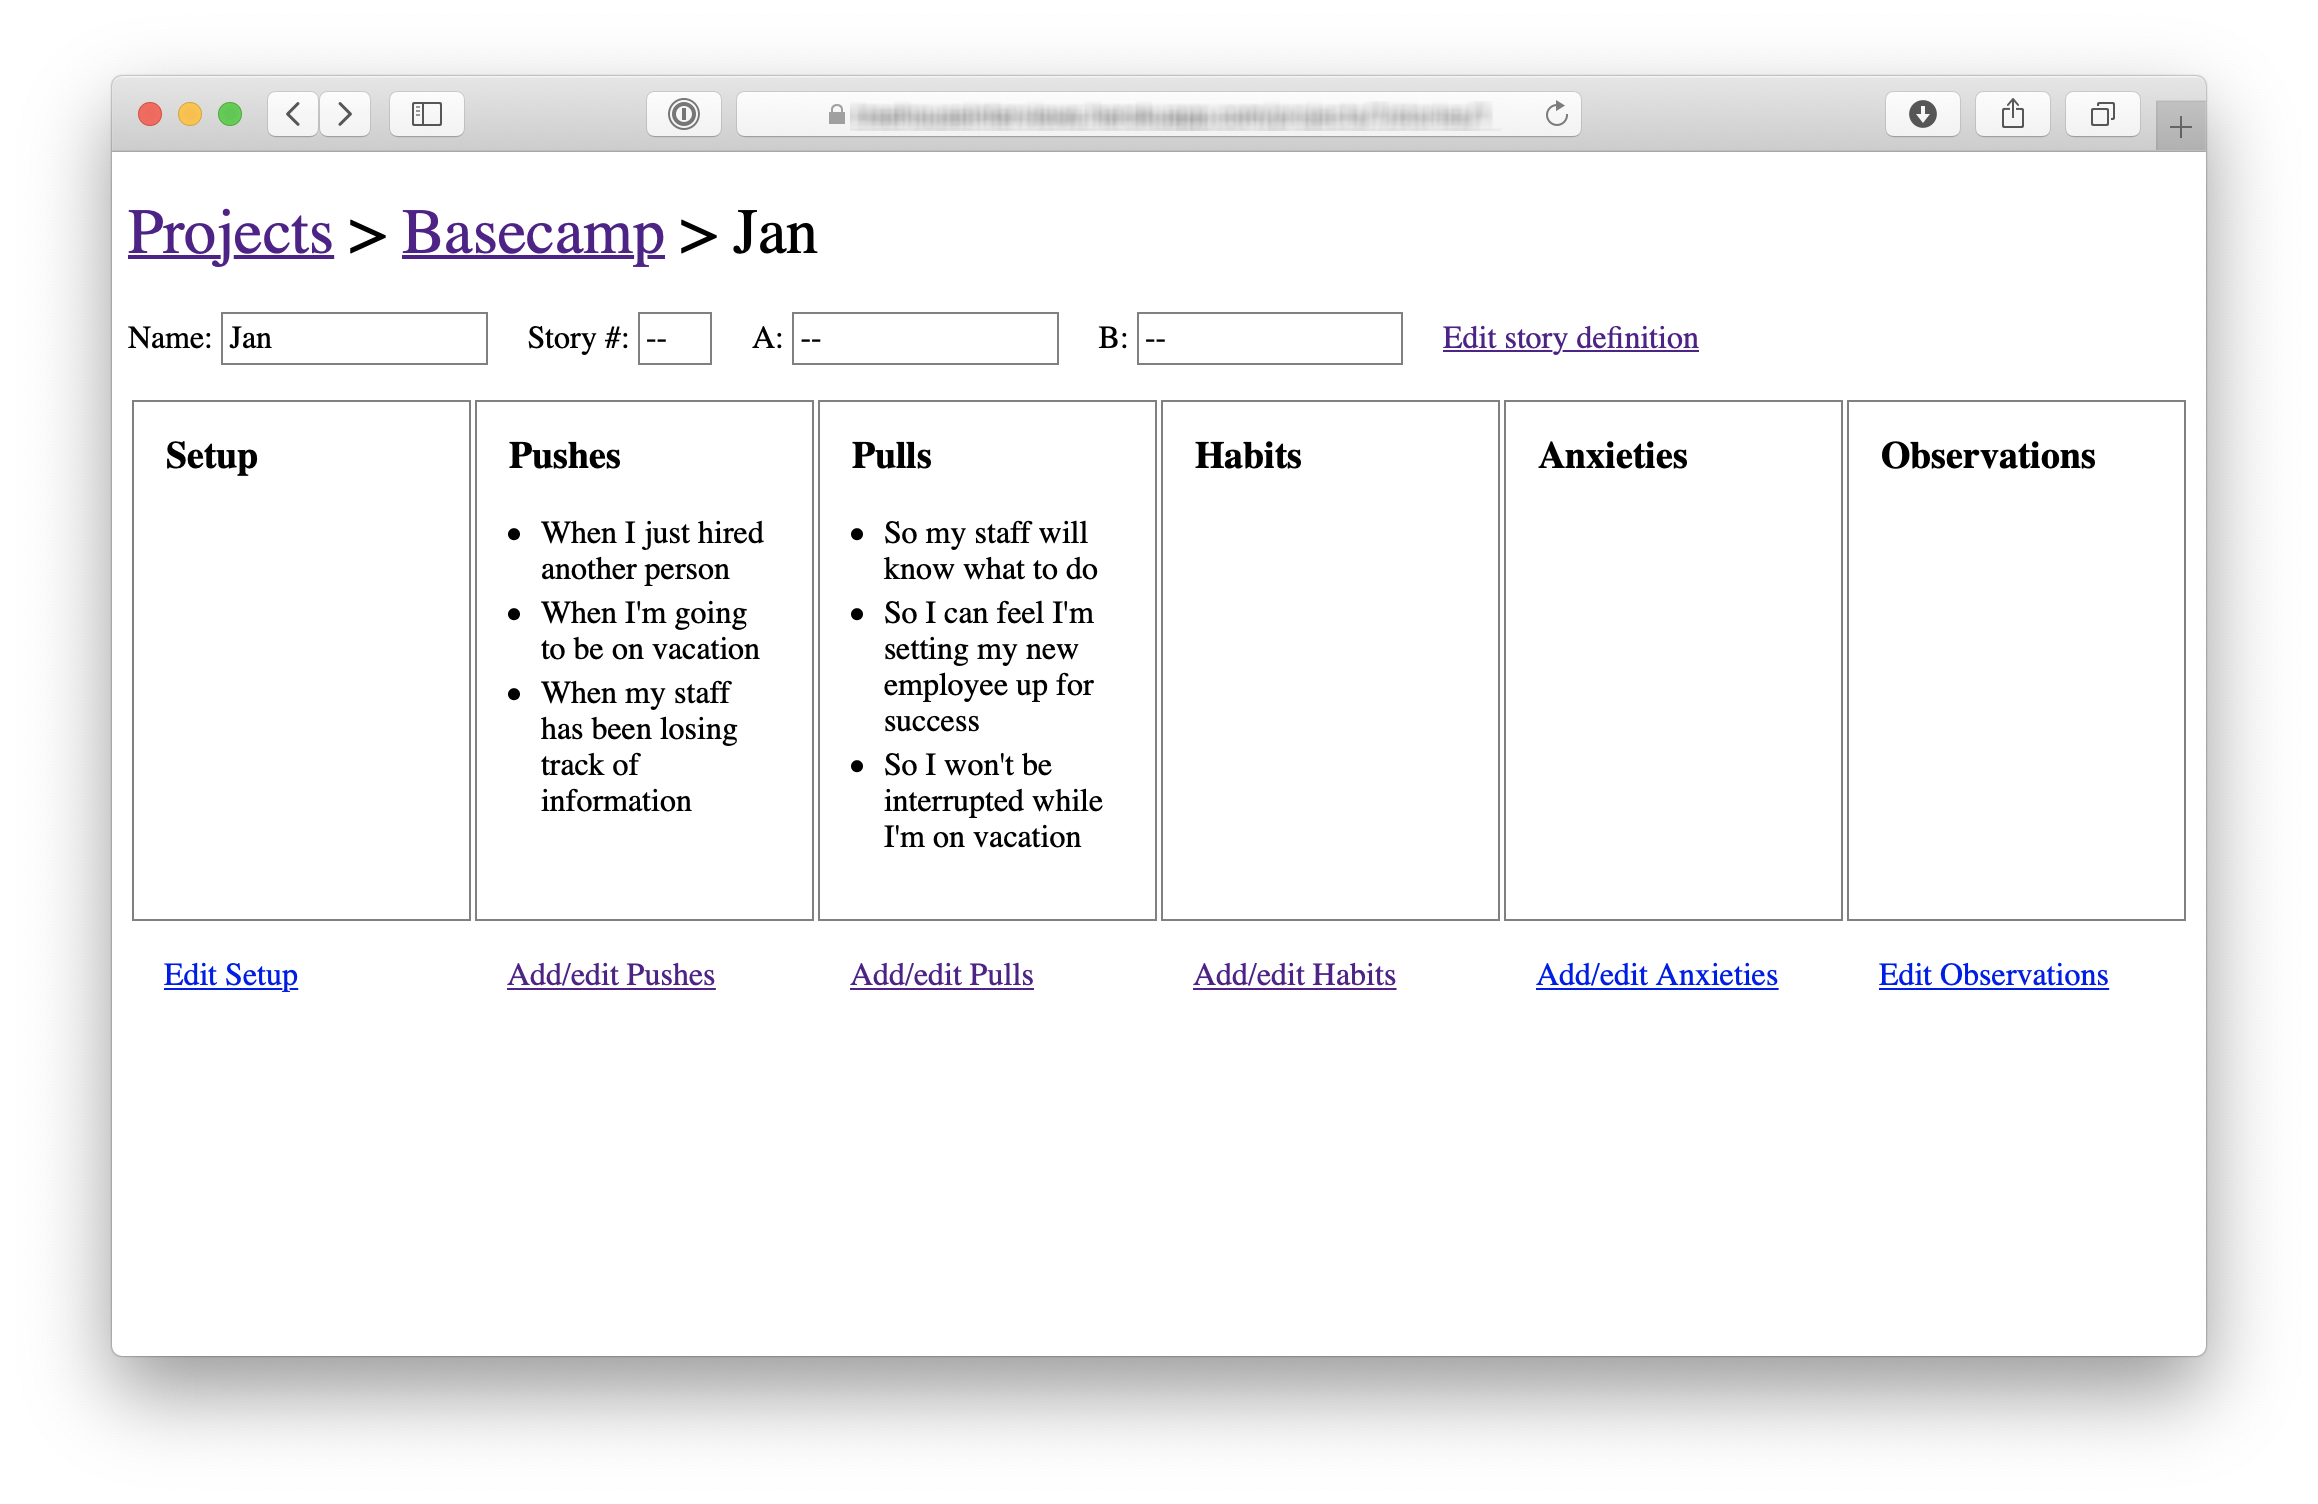 Screenshot of the interview app. A large breadcrumb at the top shows the project name (Basecamp) and the name of the interview subject (Jan). Below that there are six boxes side-by-side labeled with different categories of data to record from the interview: Setup, Pushes, Pulls, Habits, Anxities, and Observations. Below each box there is a simple text link that says add/edit. The interface is rough and unstyled.